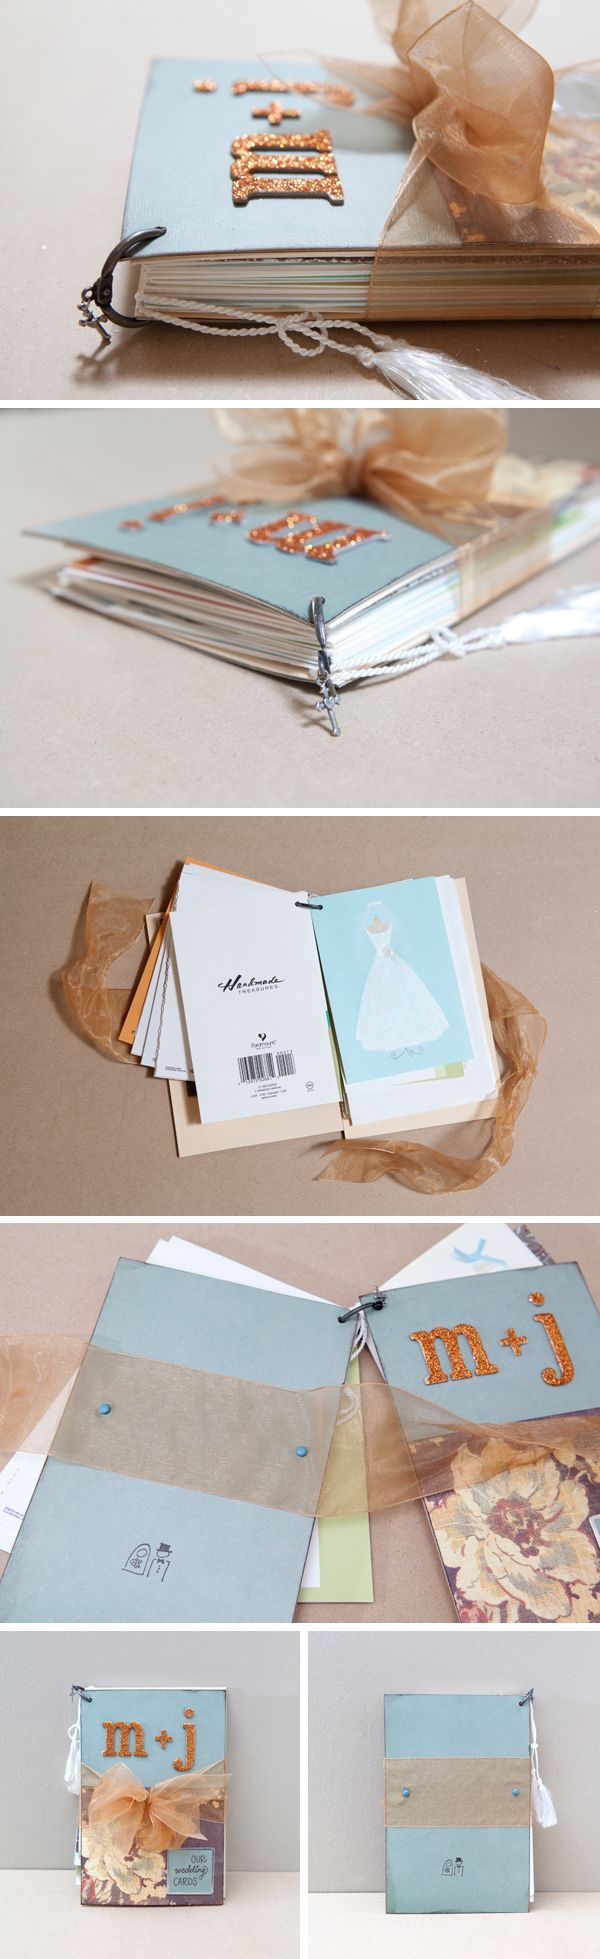 How to diy an adorable album to save special greeting cards wedding card albumwhat a great way to compile and display these cards that i cant part with m4hsunfo